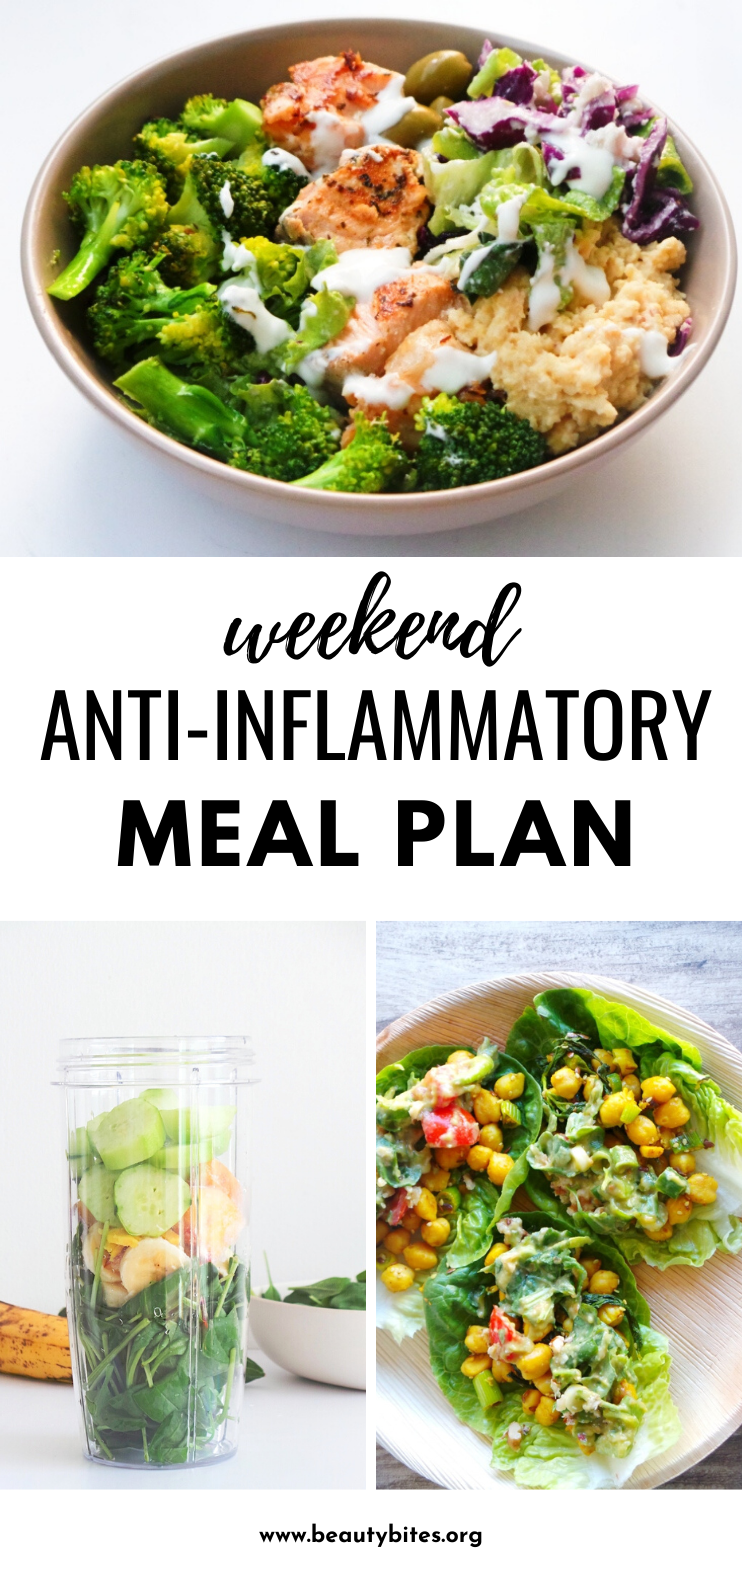 A simple weekend anti-inflammatory meal plan! This is a two-day reset to reduce inflammation by adding more anti-inflammatory foods like fresh vegetables and fish into our diet and leaving out inflammatory foods like red meat, sugar and oils. This healthy meal plan is a great start to the anti-inflammatory diet.